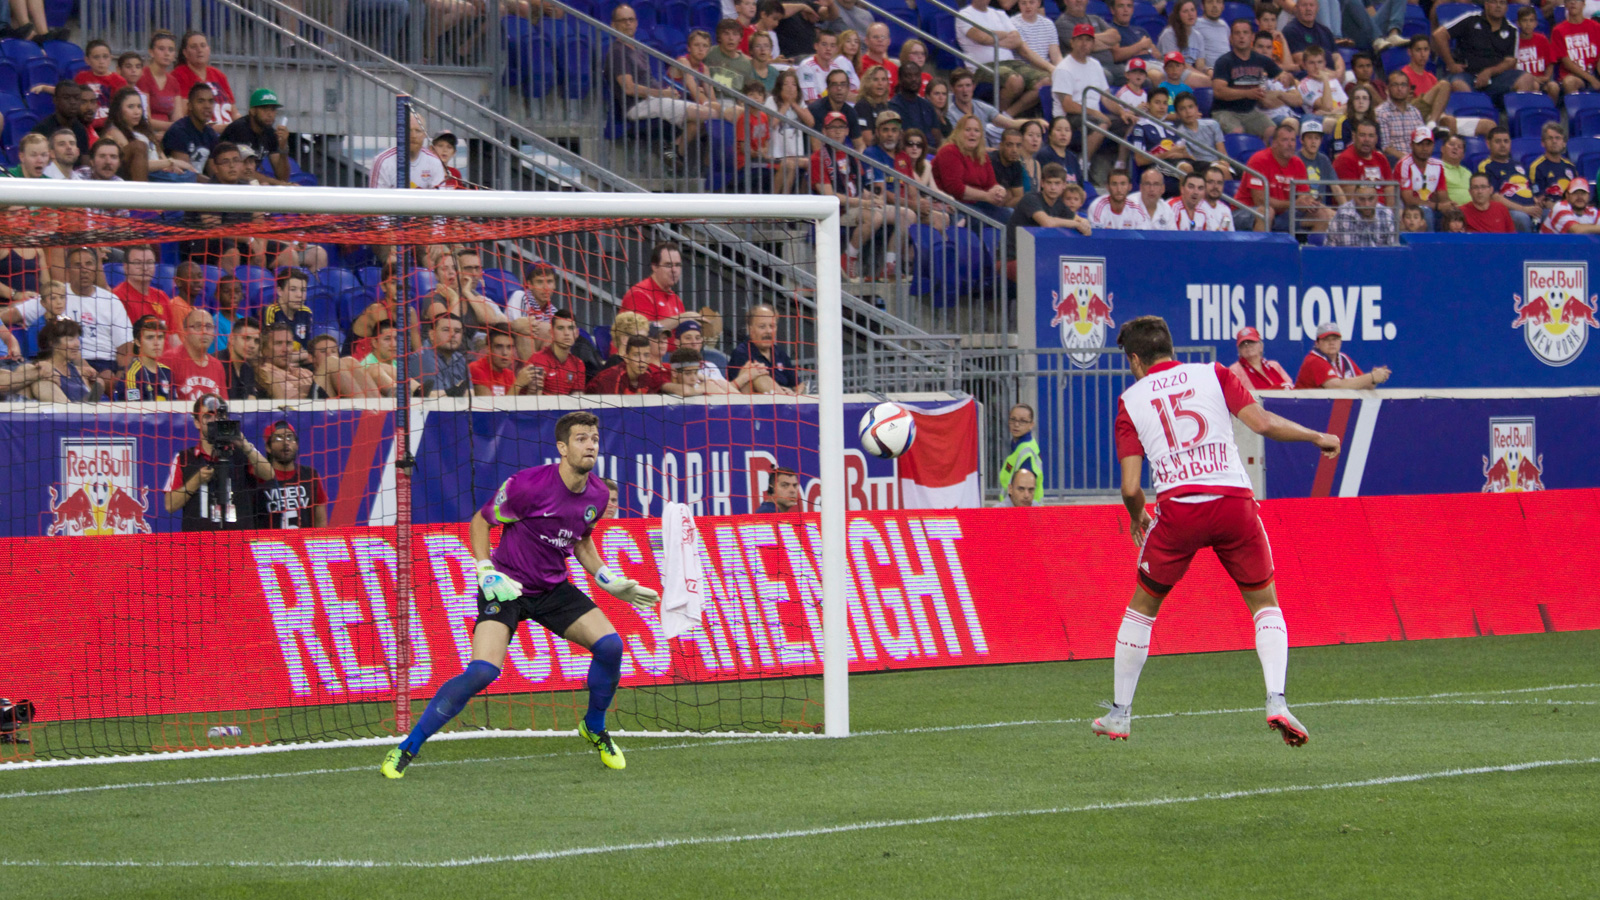 New York Red Bulls midfielder Sam Zizzo (15), already with a goal to his name in the match, fires a header toward Cosmos goalkeeper Jimmy Maurer (1).